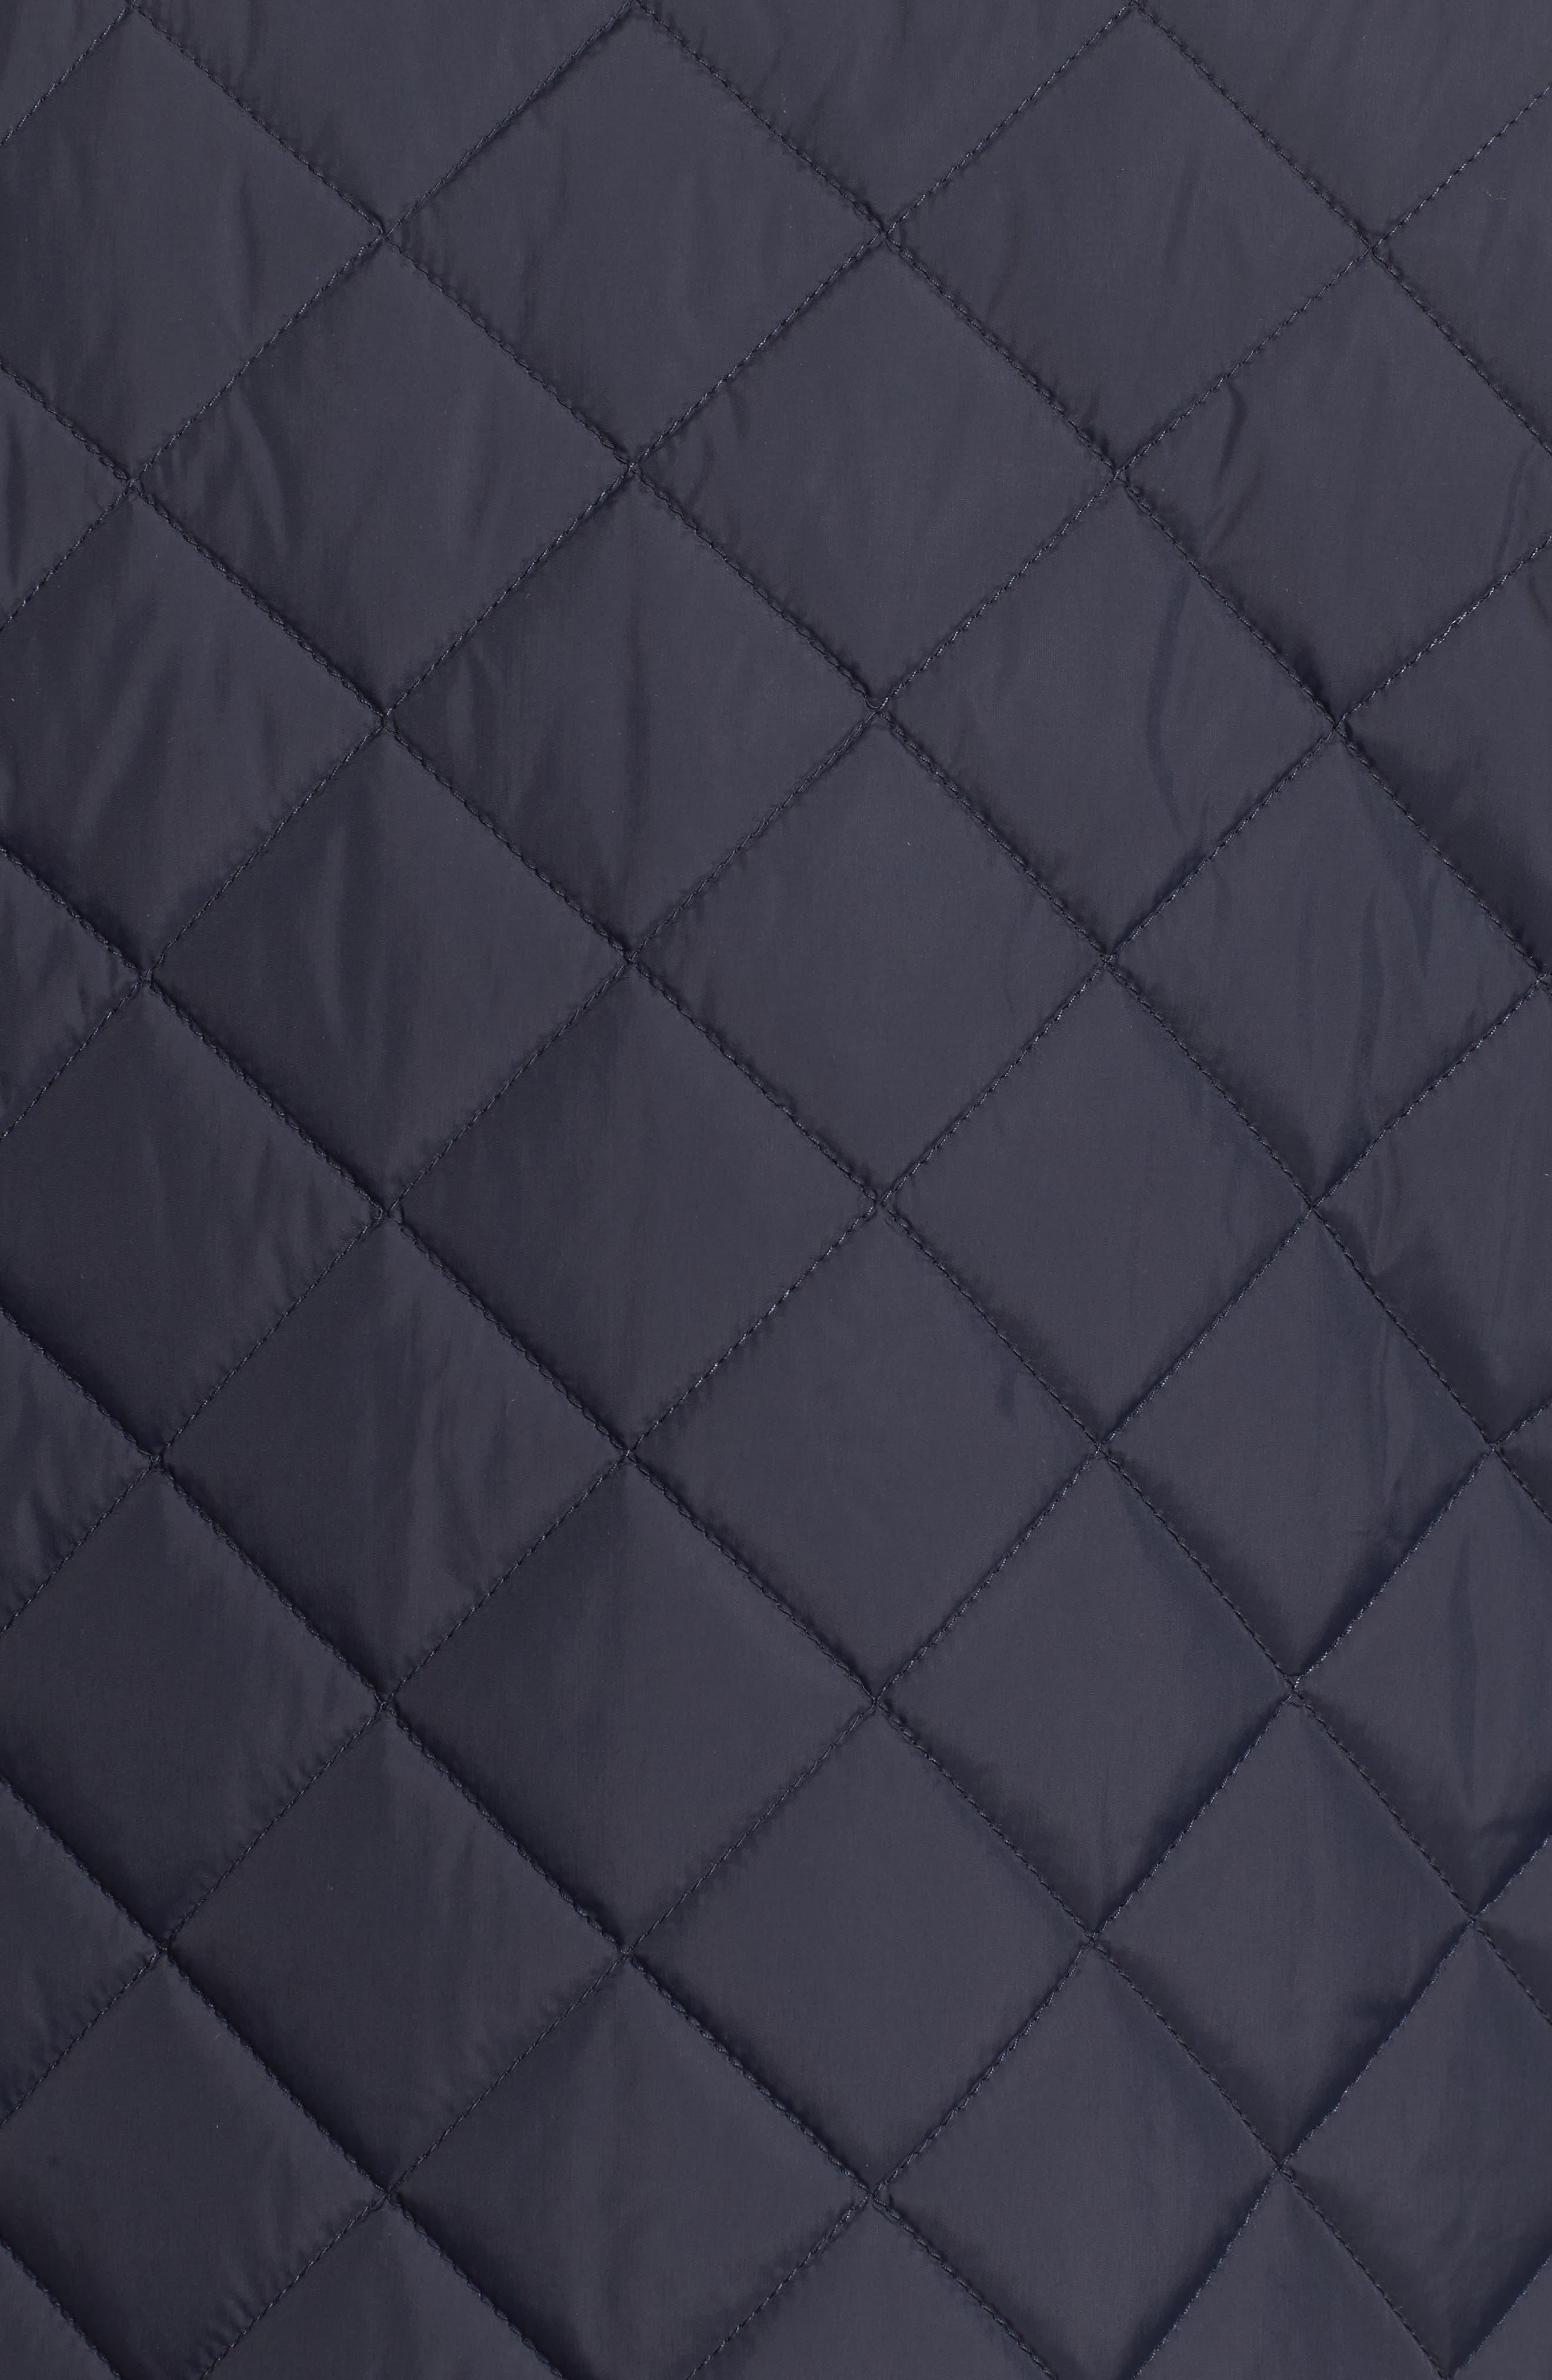 Diamond Quilted Full Zip Jacket,                             Alternate thumbnail 13, color,